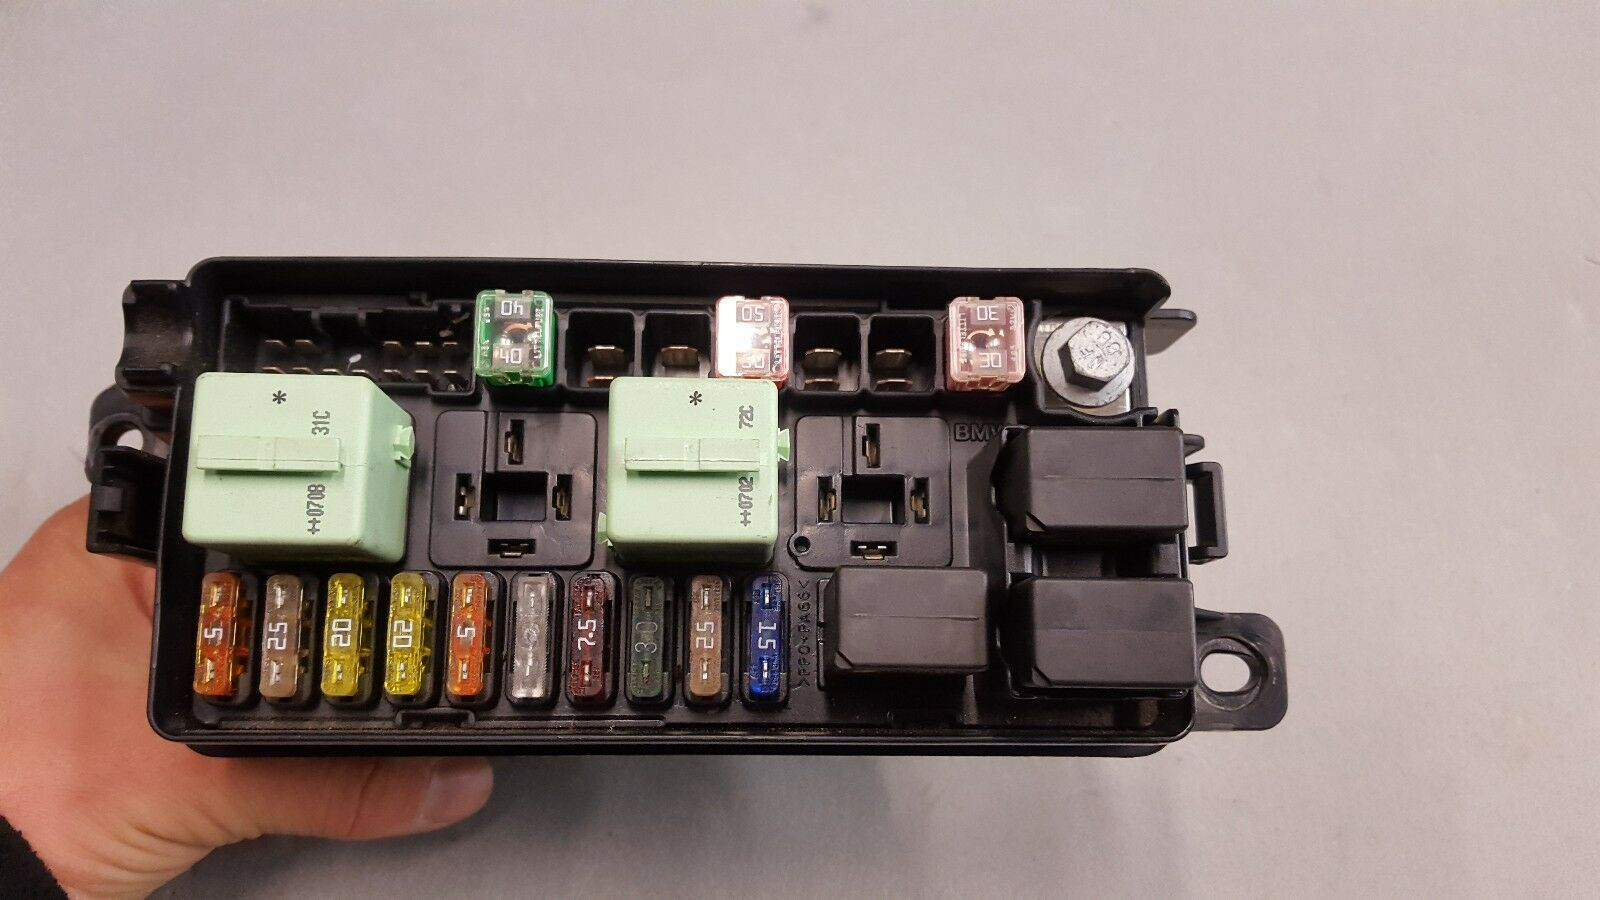 2007 2013 Mini Cooper One R56 Engine Bay Fusebox With Relays 3449504 Fuse Box 01 1 Of 3free Shipping See More